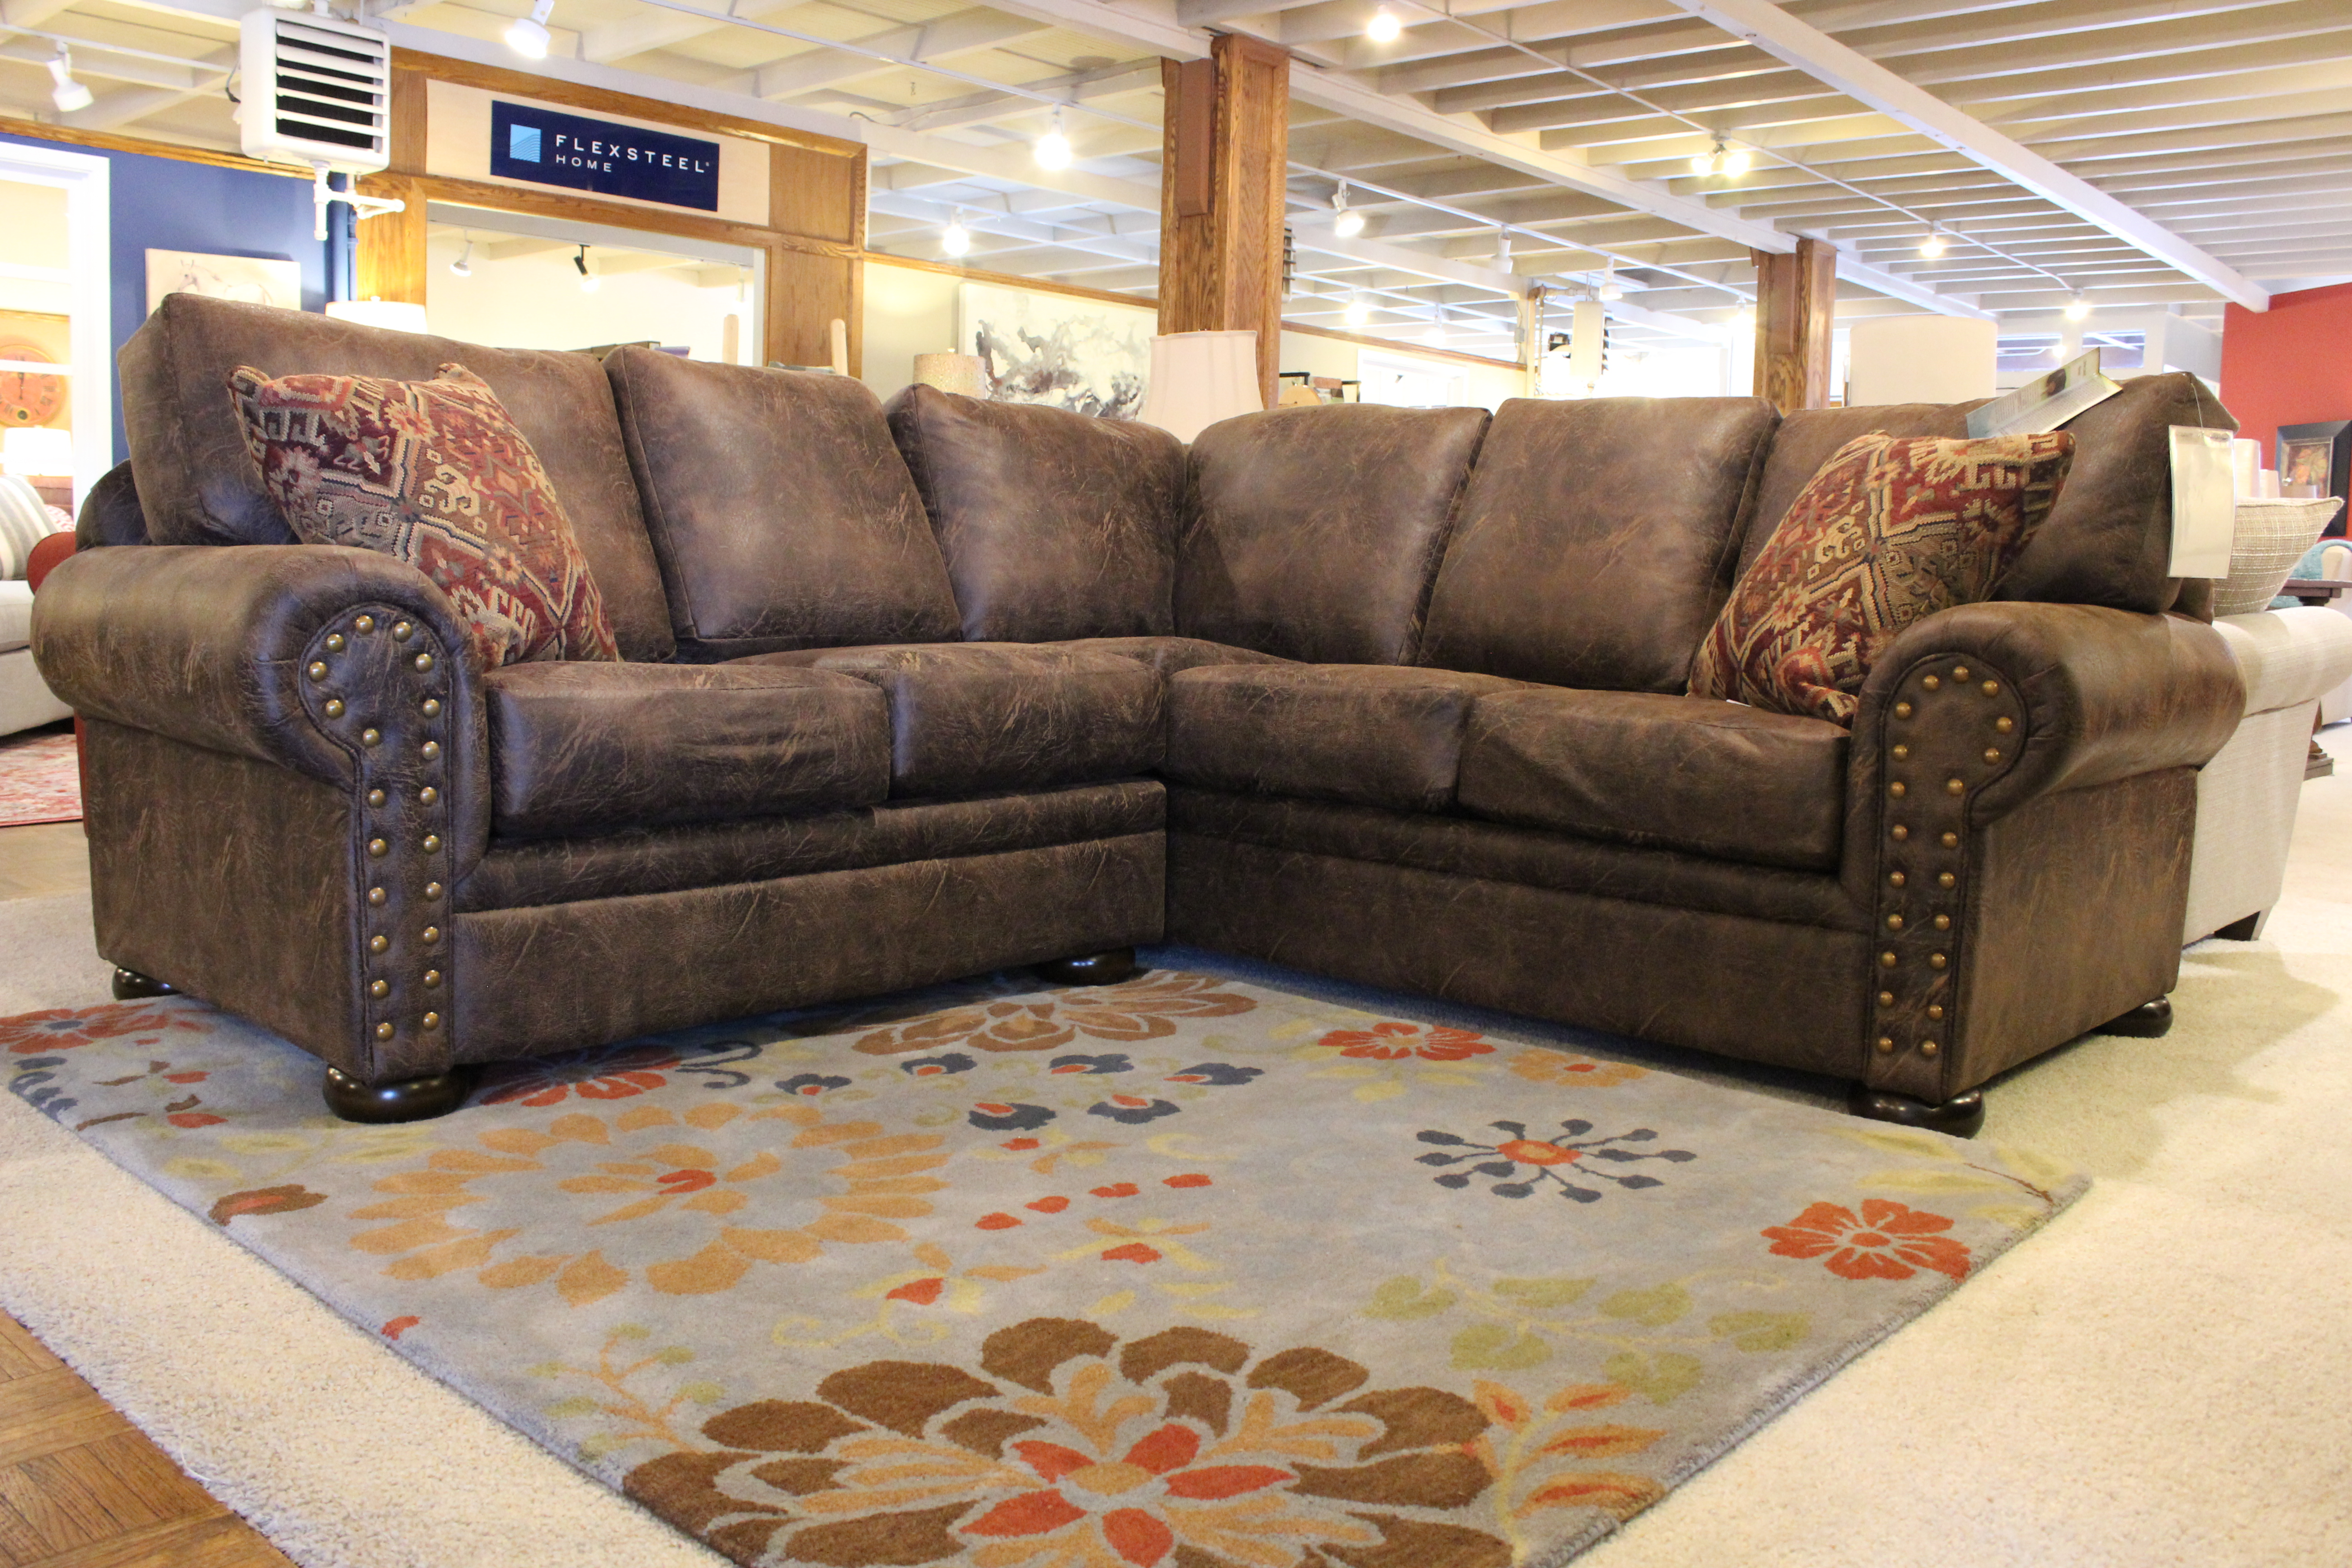 New To The Showroom Floor Are A Variety Of Beautiful Sofas By Intermountain  Furniture. Stop By Today And Have A Seat On One Of These Cozy Pieces!